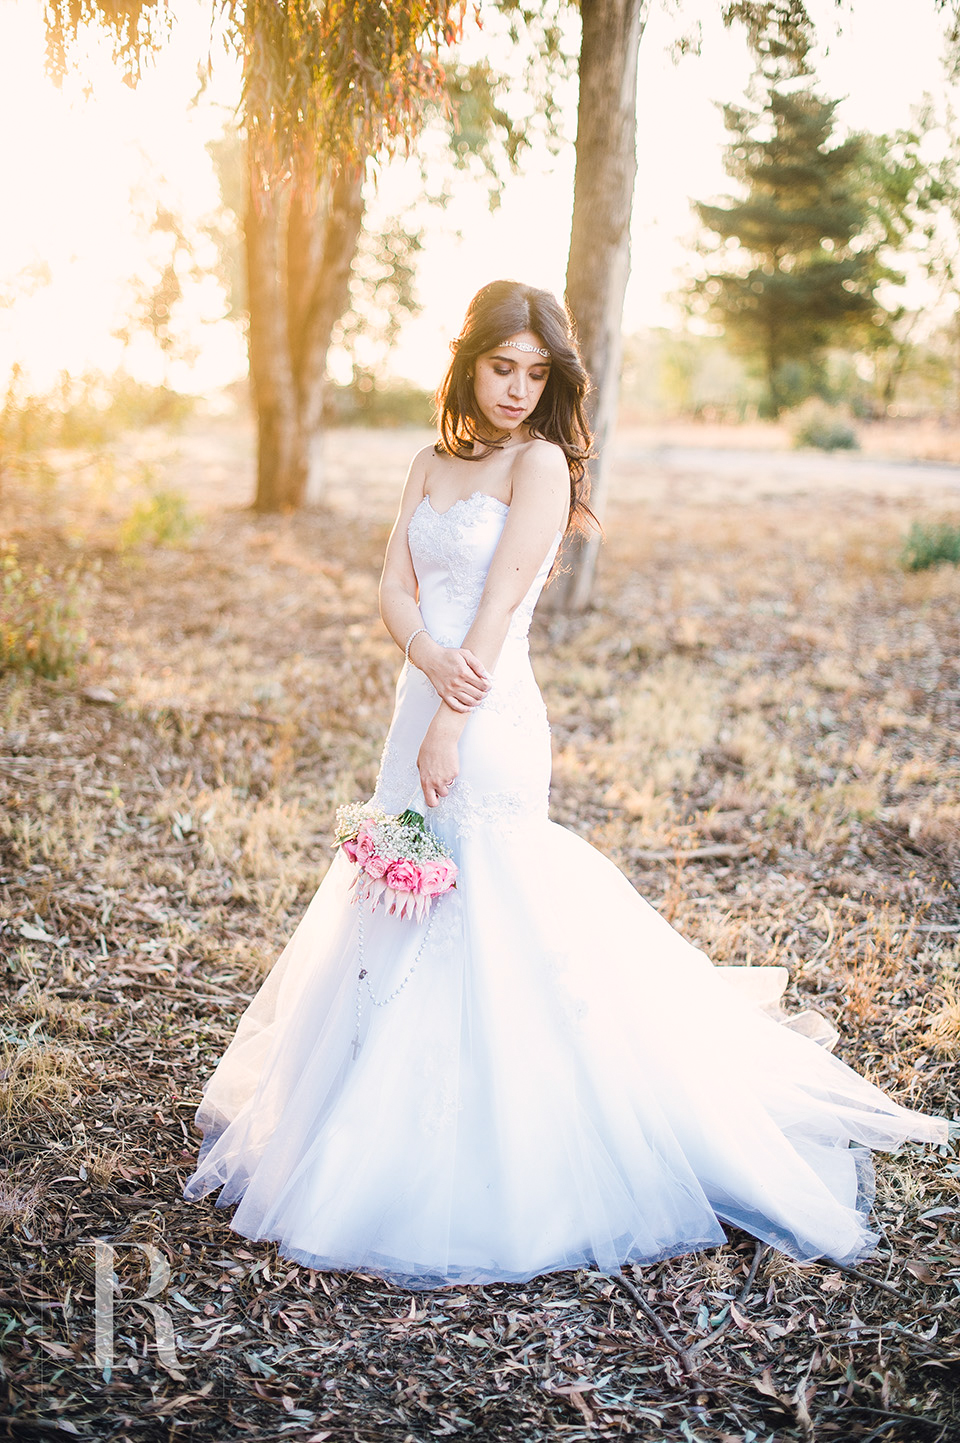 RYAN PARKER PHOTOGRAPHY_WEDDINGS_PRETORIA_ROSEMARY HILL_M&N -0415.jpg